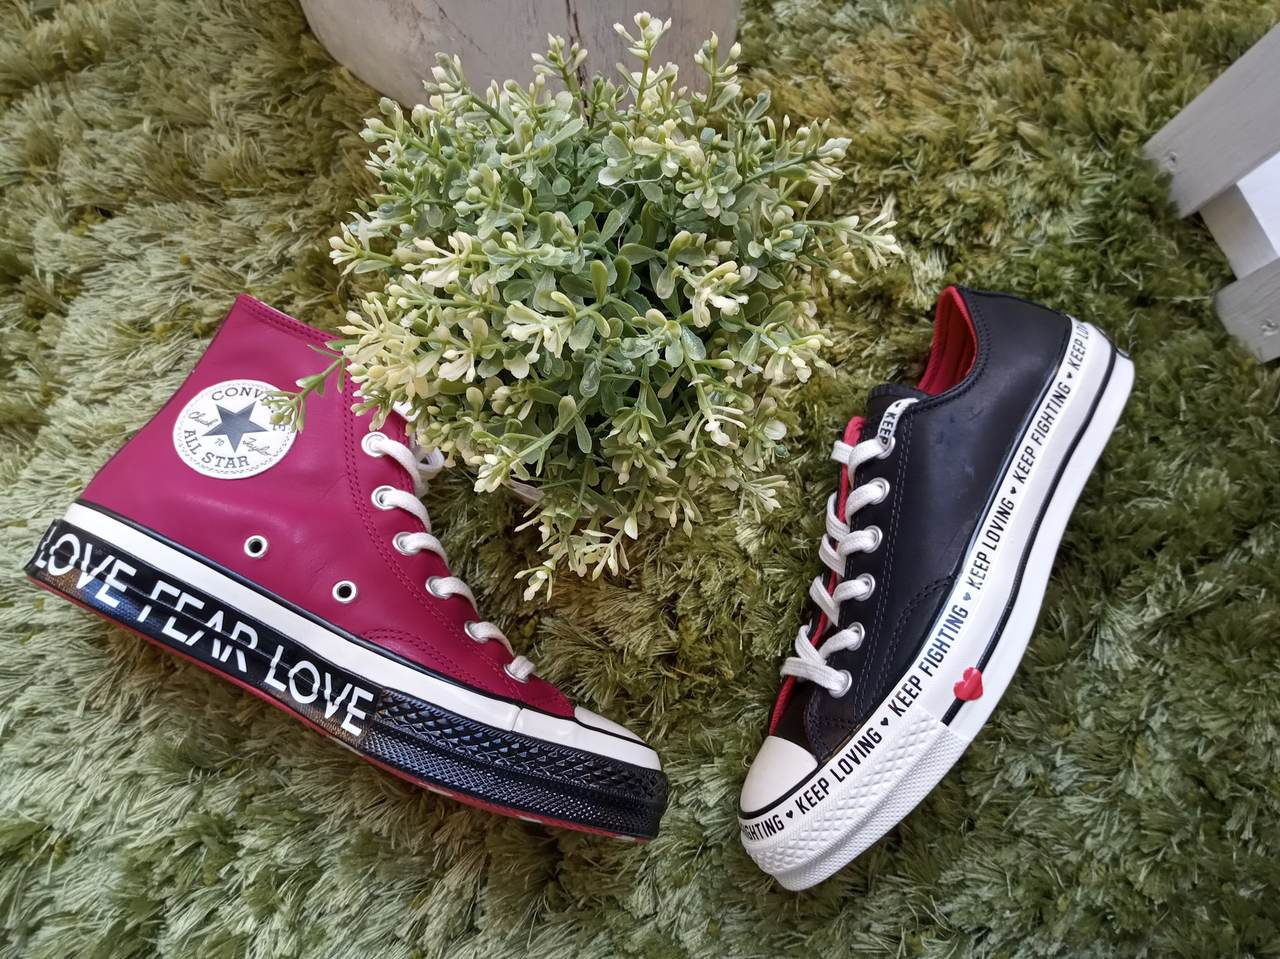 Heart Pants - Limited Converse Collection